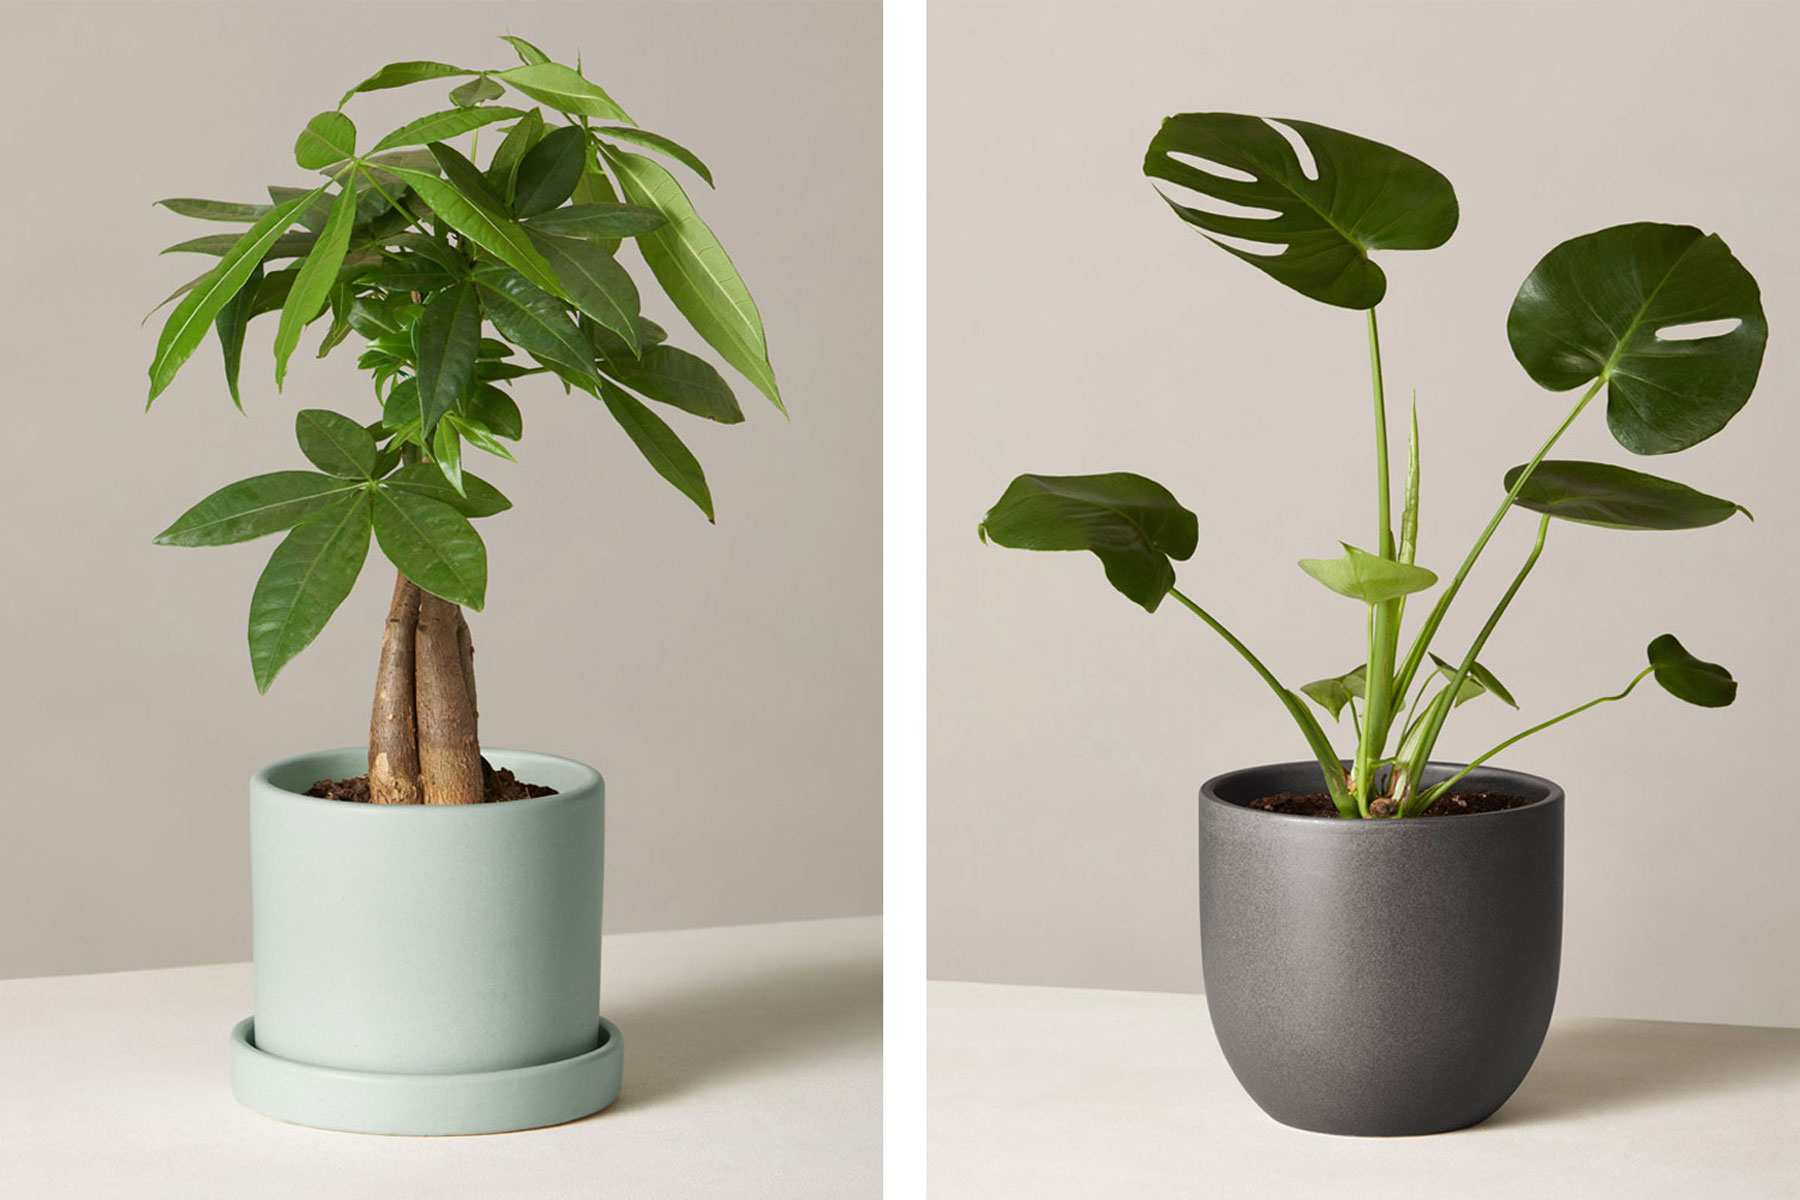 Two plants in ceramic pots